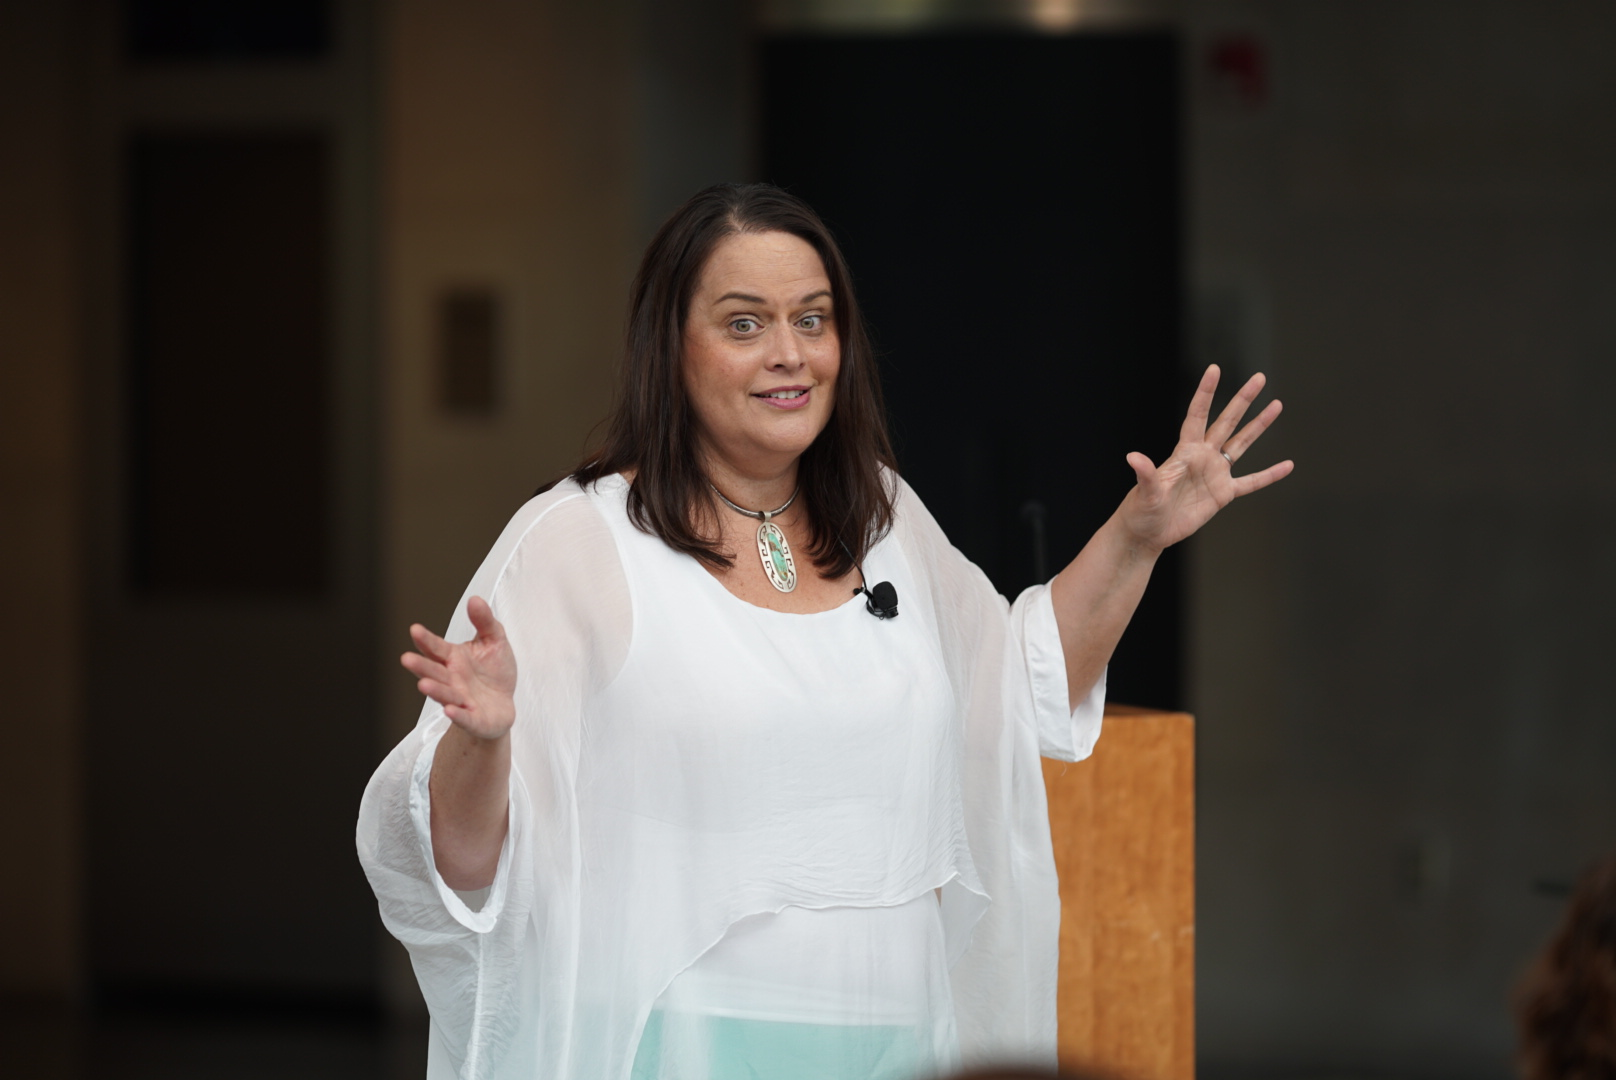 Thursday workshop leader Dr. Julia Aguirre will lead a session on Friday at 9:30 about engaging families in math education.